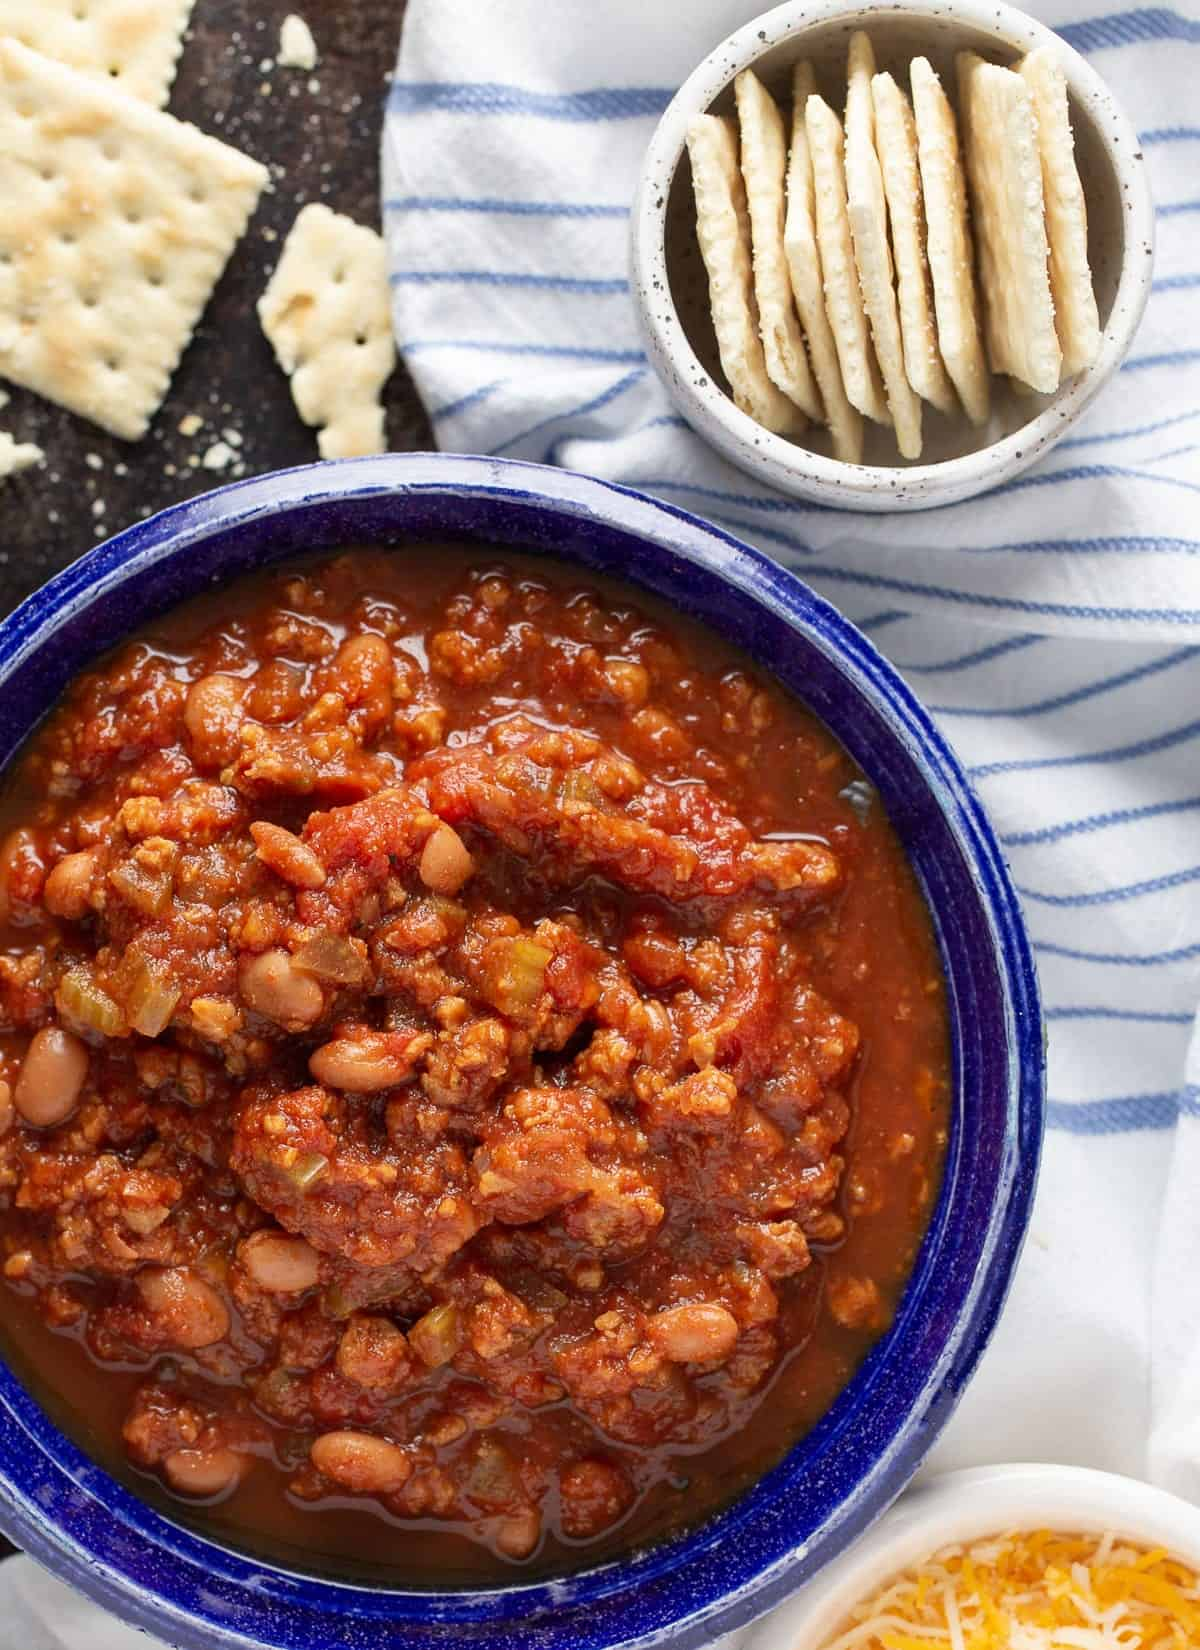 Copycat Wendy's Chili in a bowl